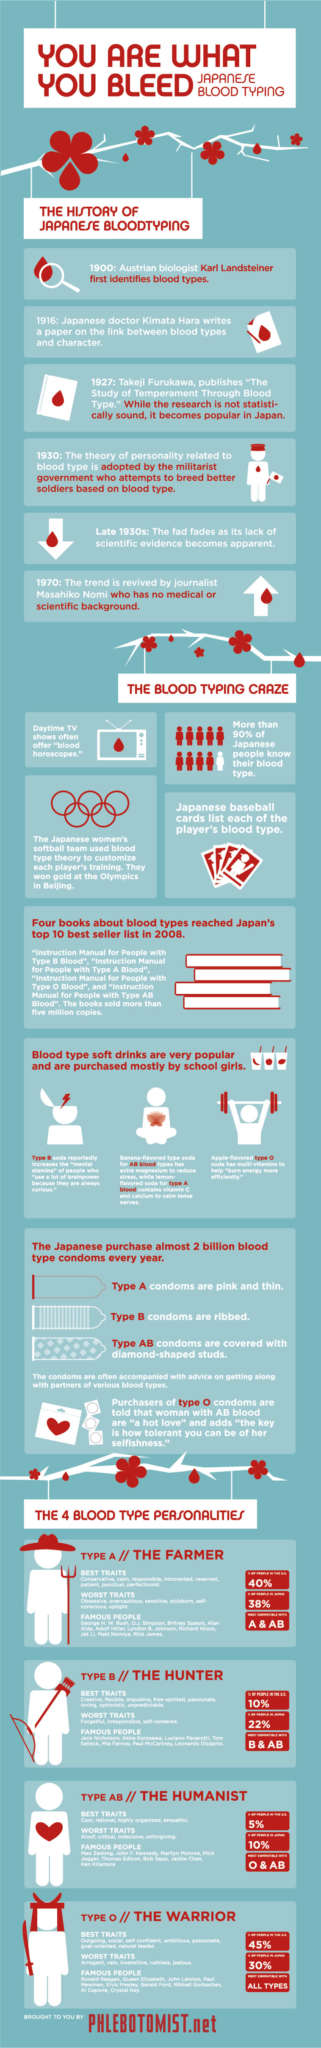 dating site blood type